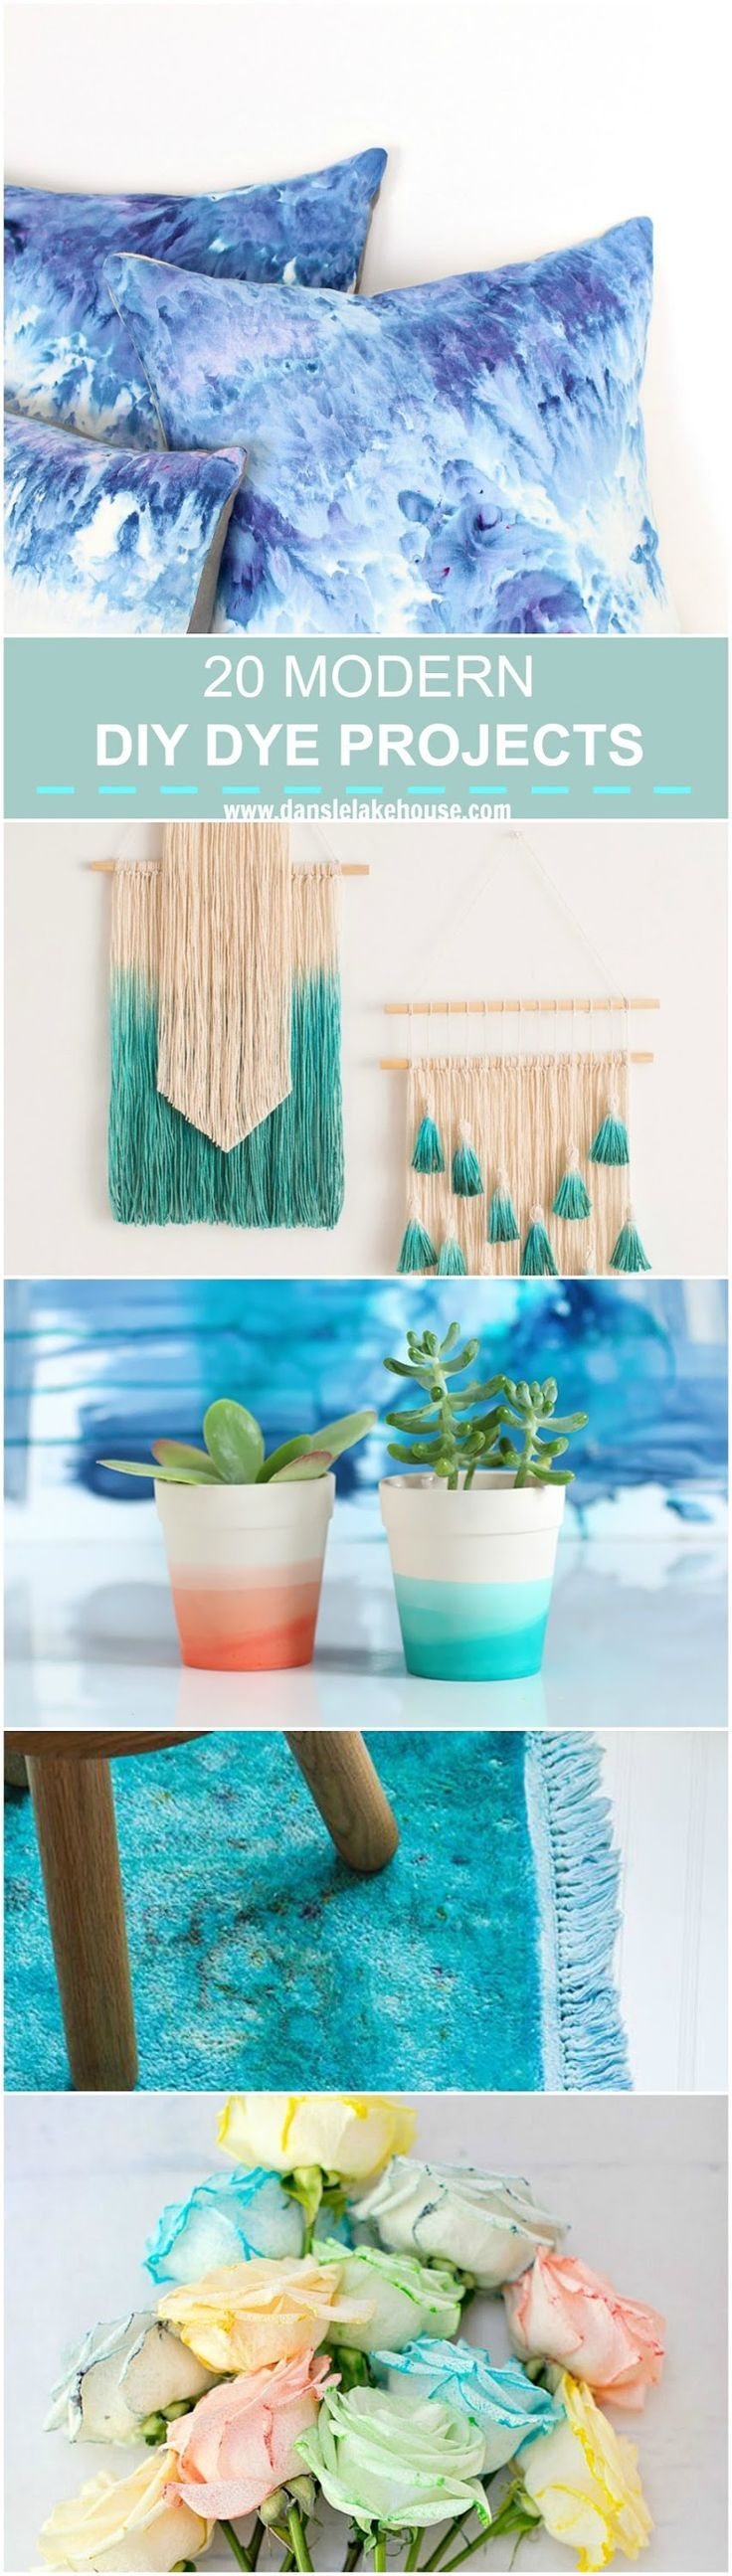 DIY Dye Projects Ideas - 20 Modern DIY Projects to Dye For.  How to Dye Anything! | /danslelakehouse/